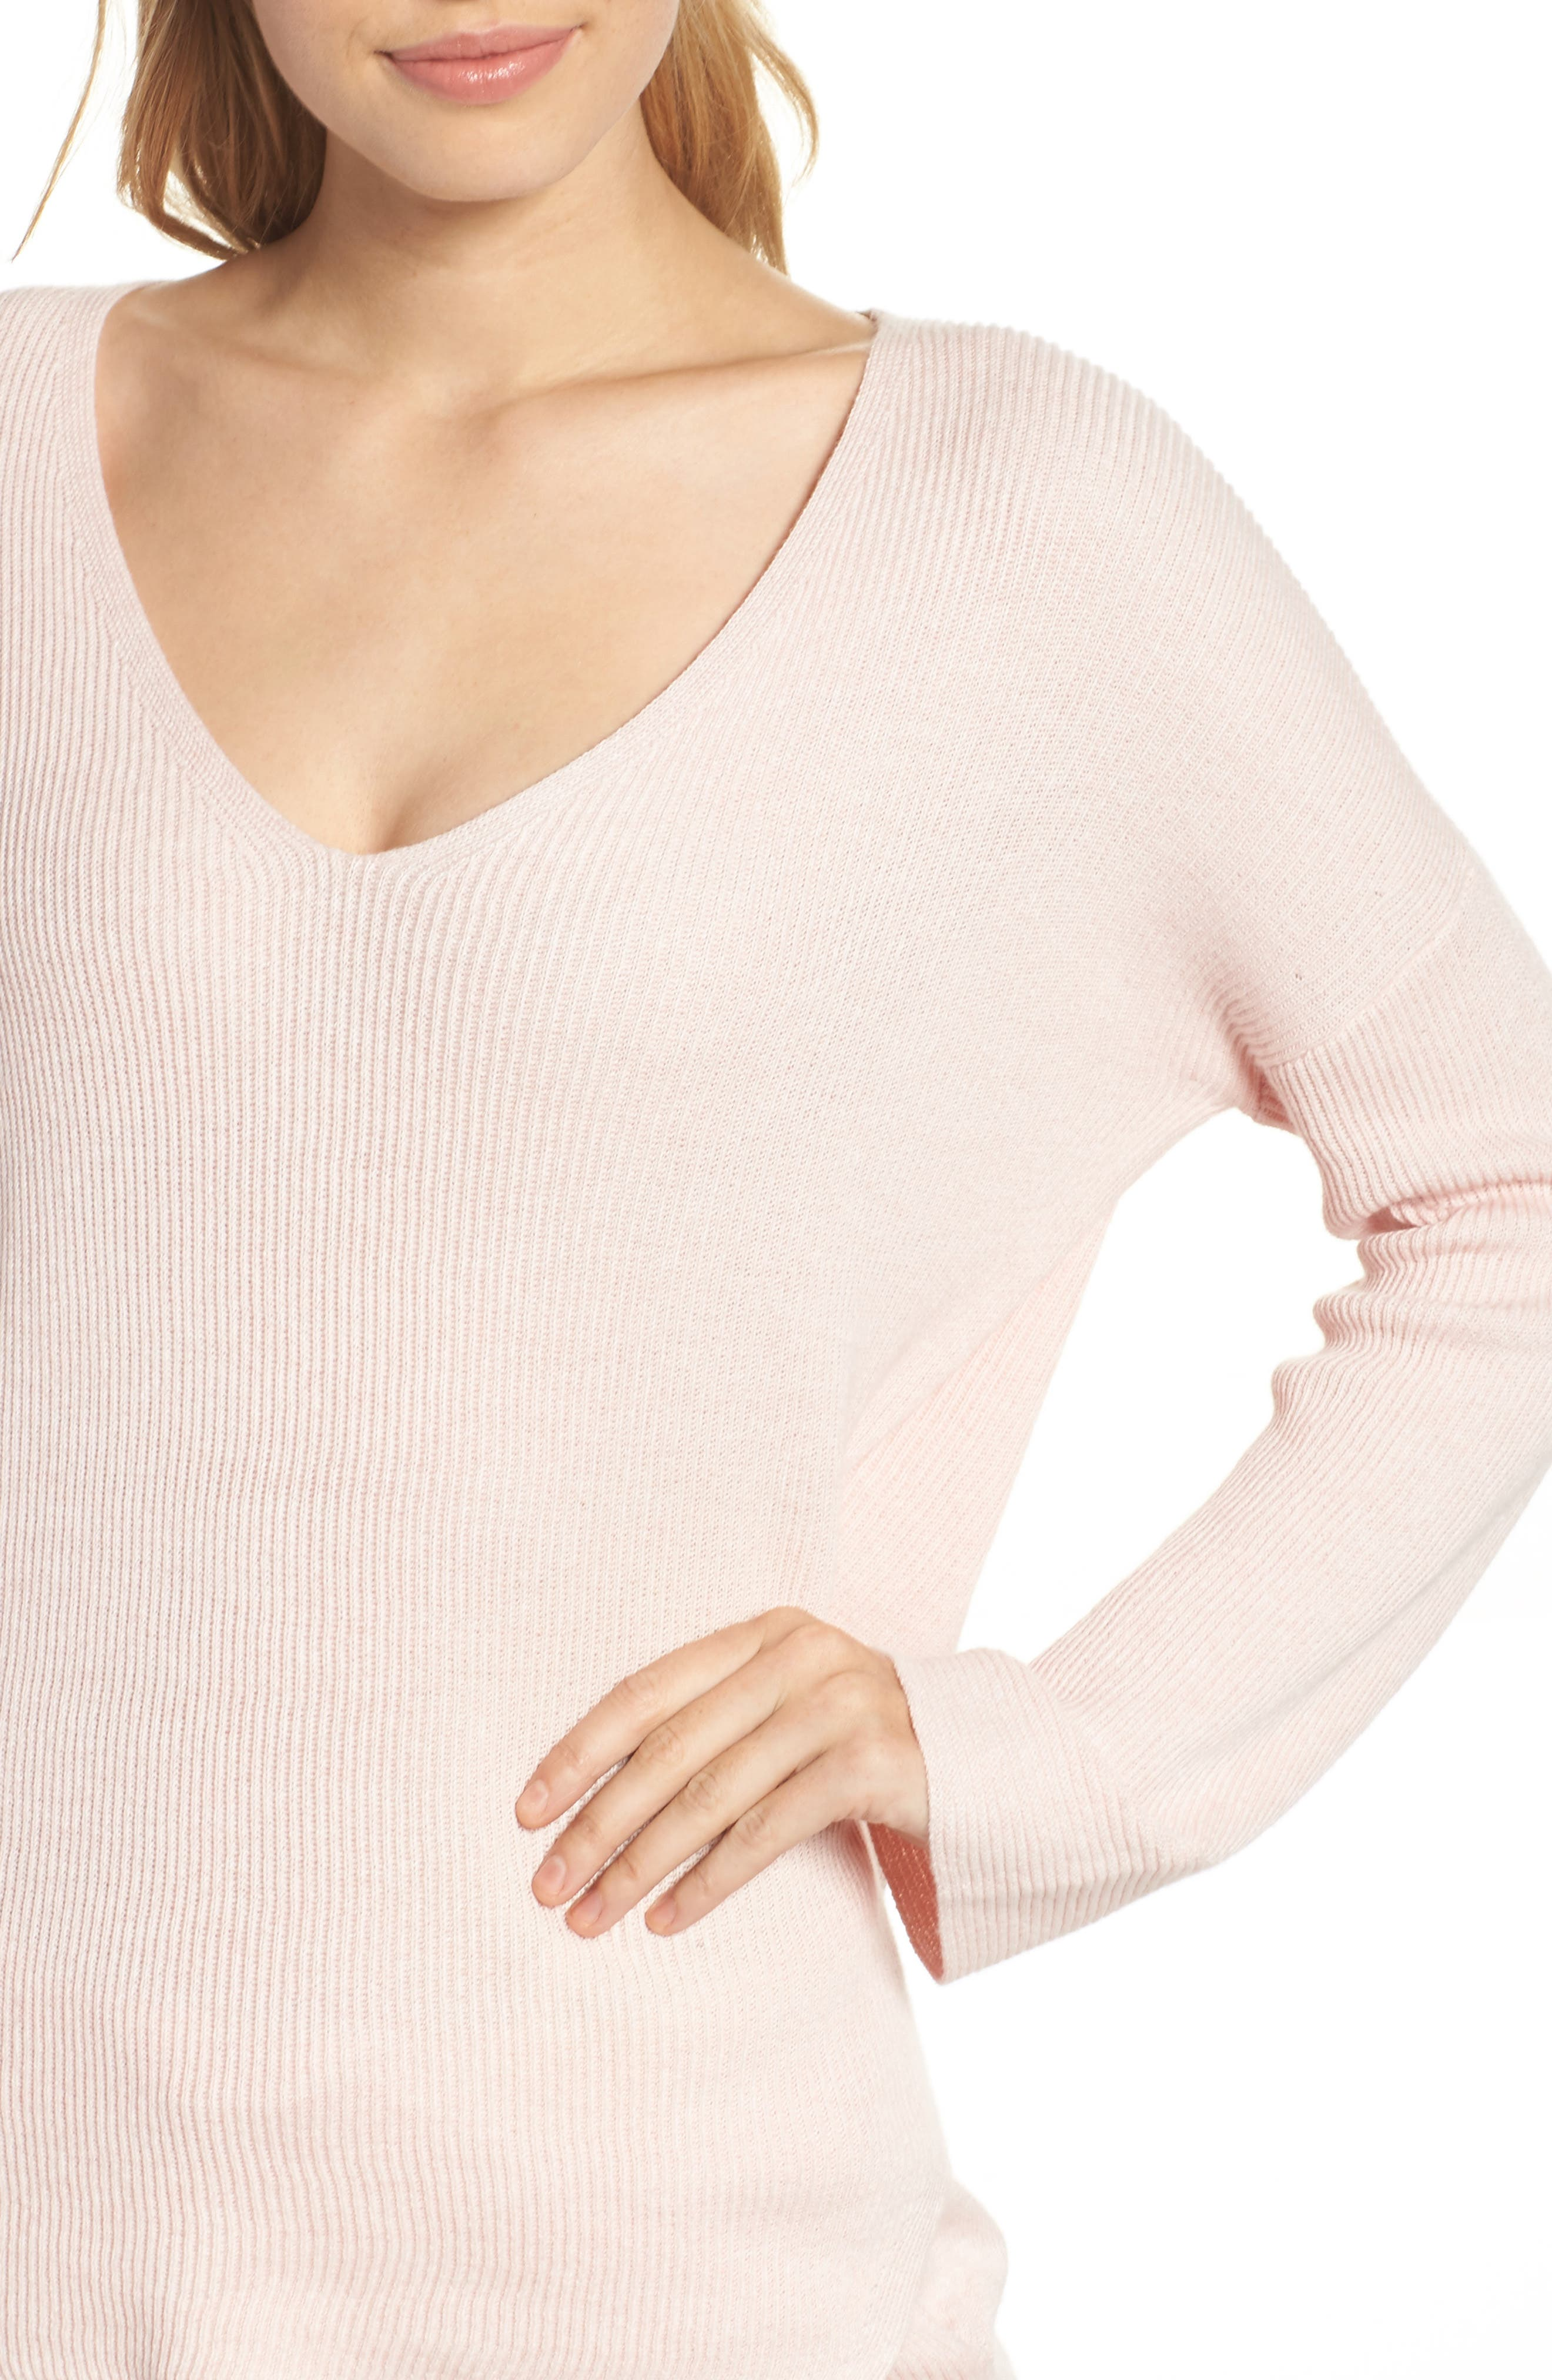 Veronica Lounge Pullover,                             Alternate thumbnail 8, color,